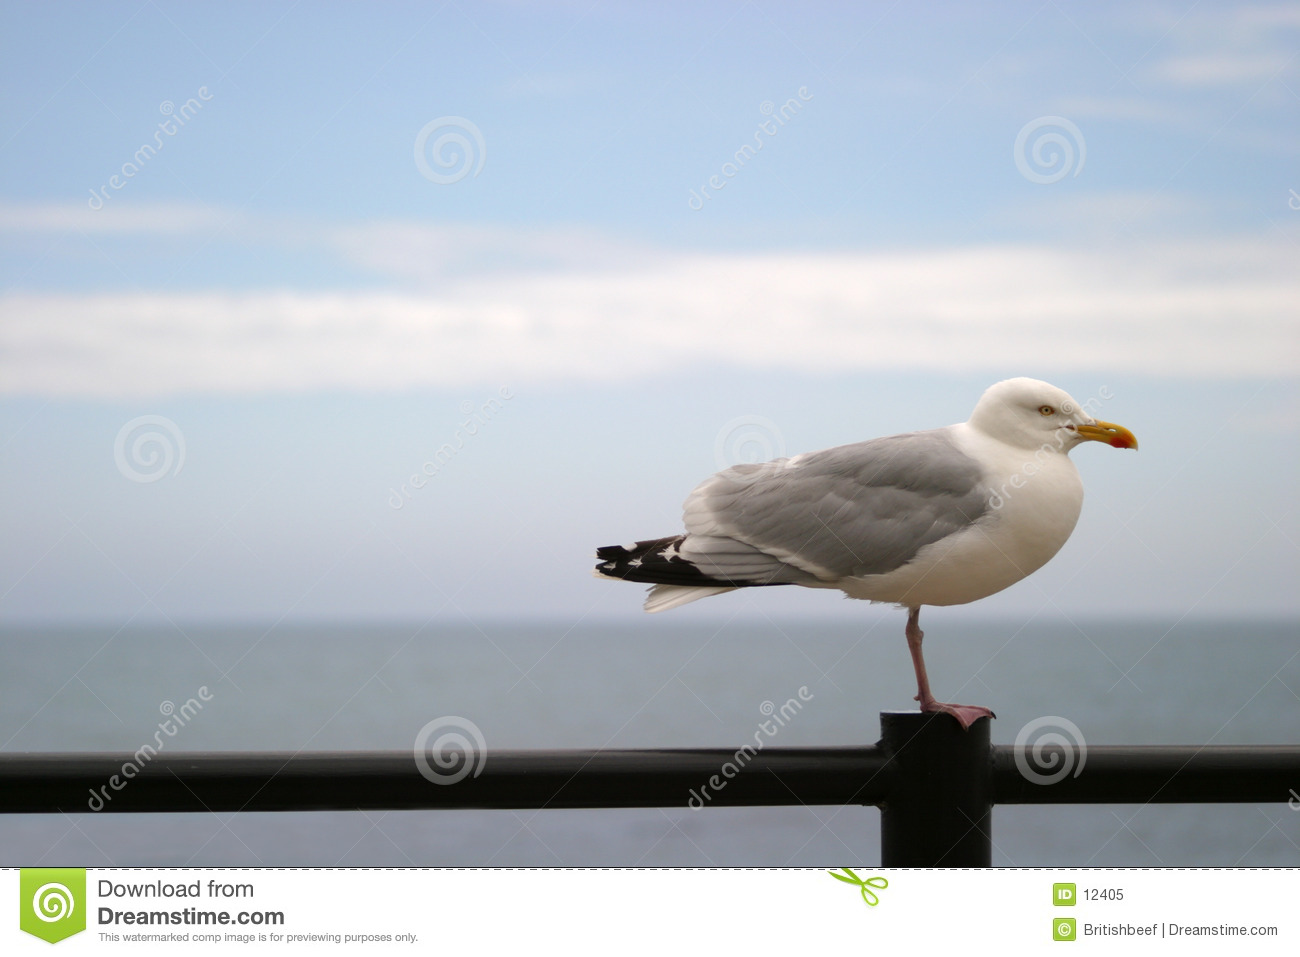 Seagull on railing